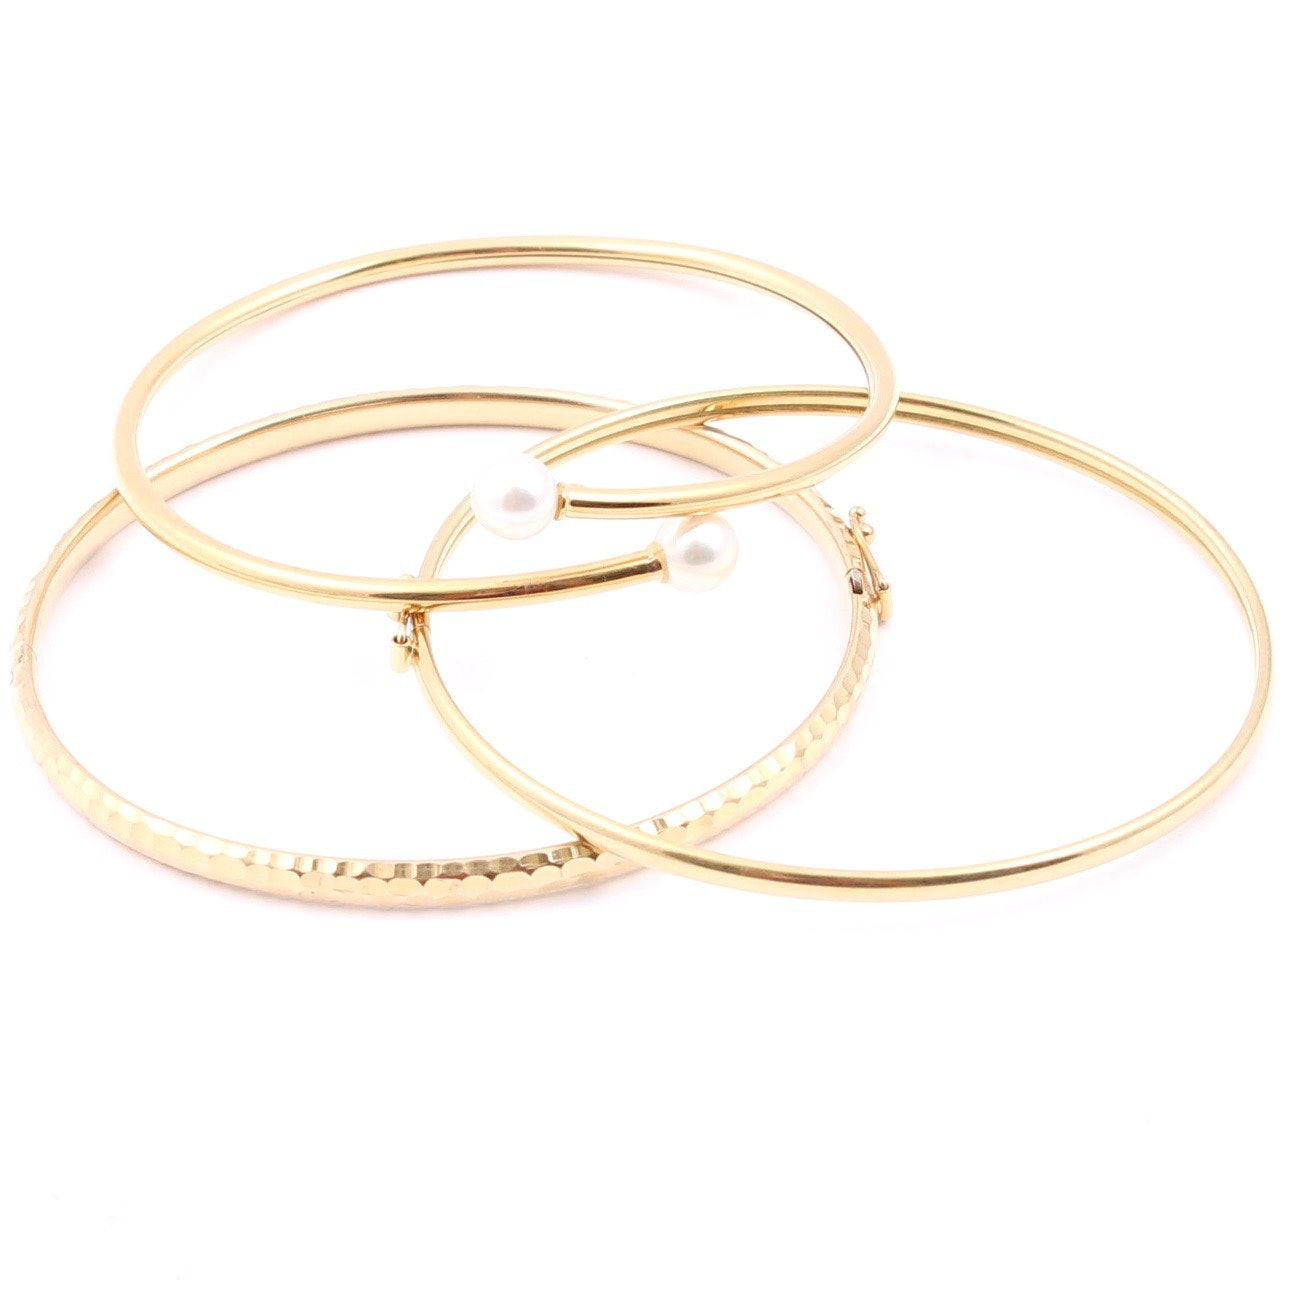 Three 14K Yellow Gold Bangle Bracelet Featuring Cultured Pearls